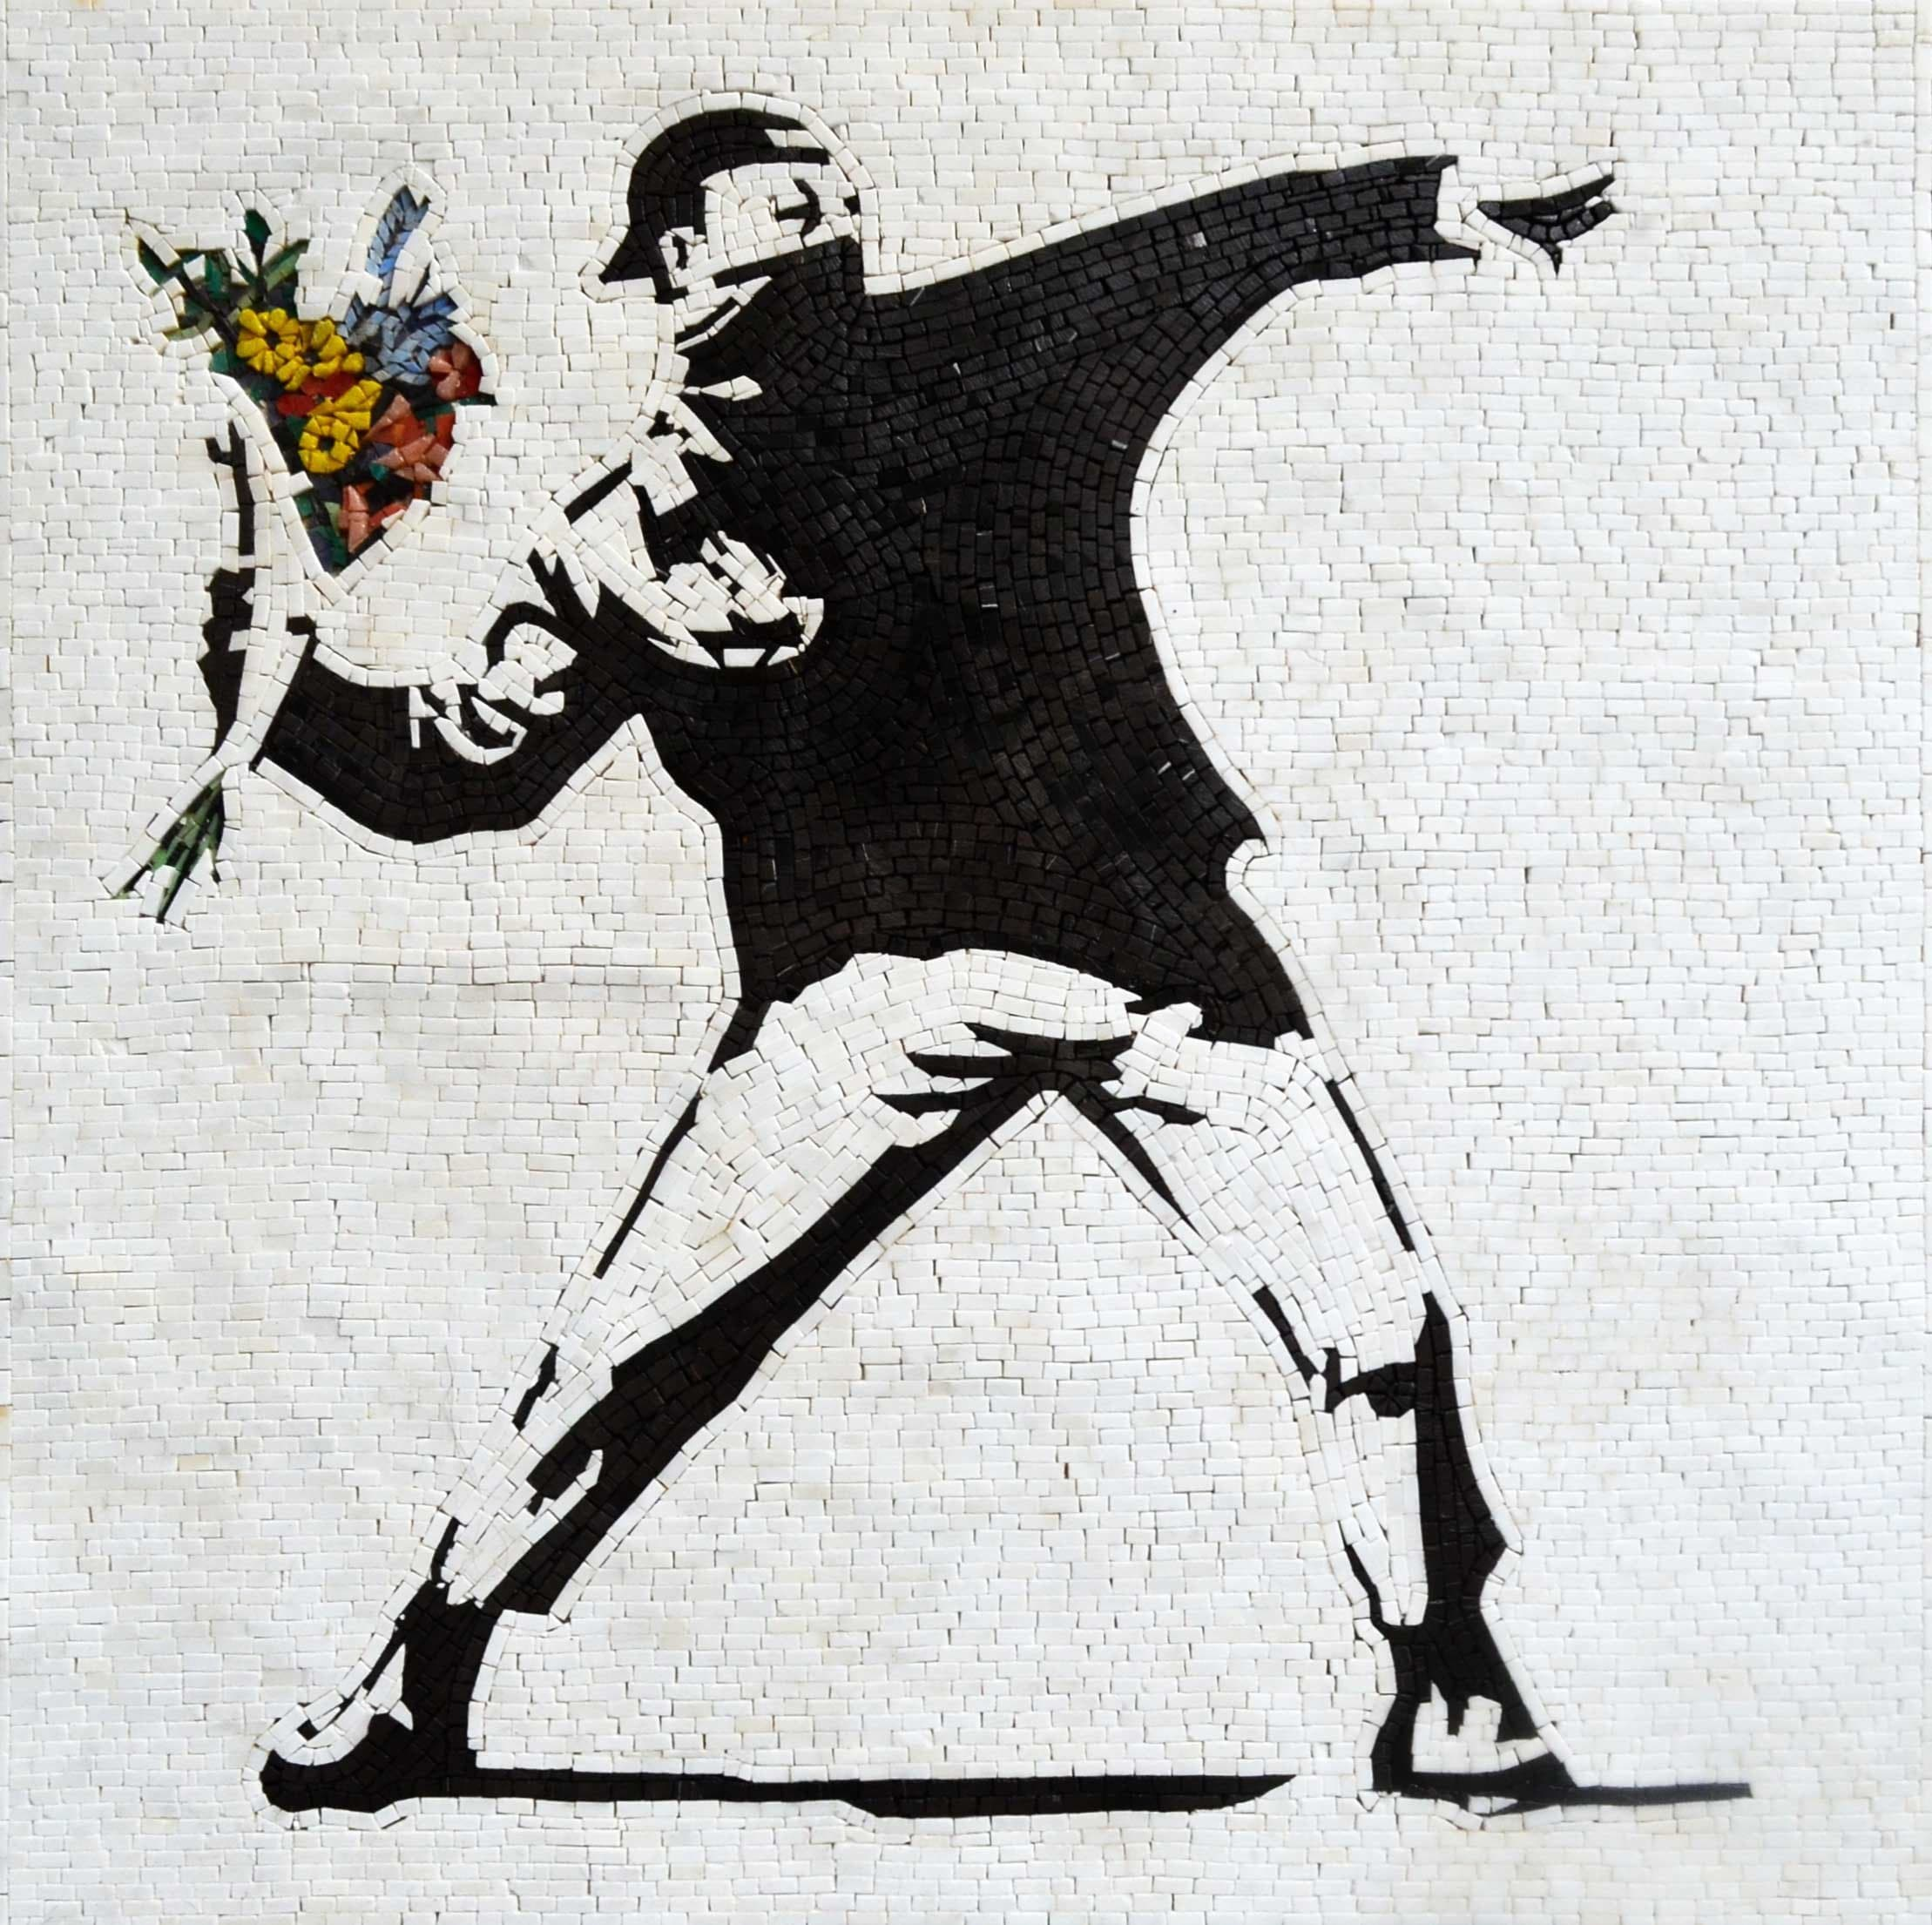 Banksy The Flower Thrower Mosaic Pic